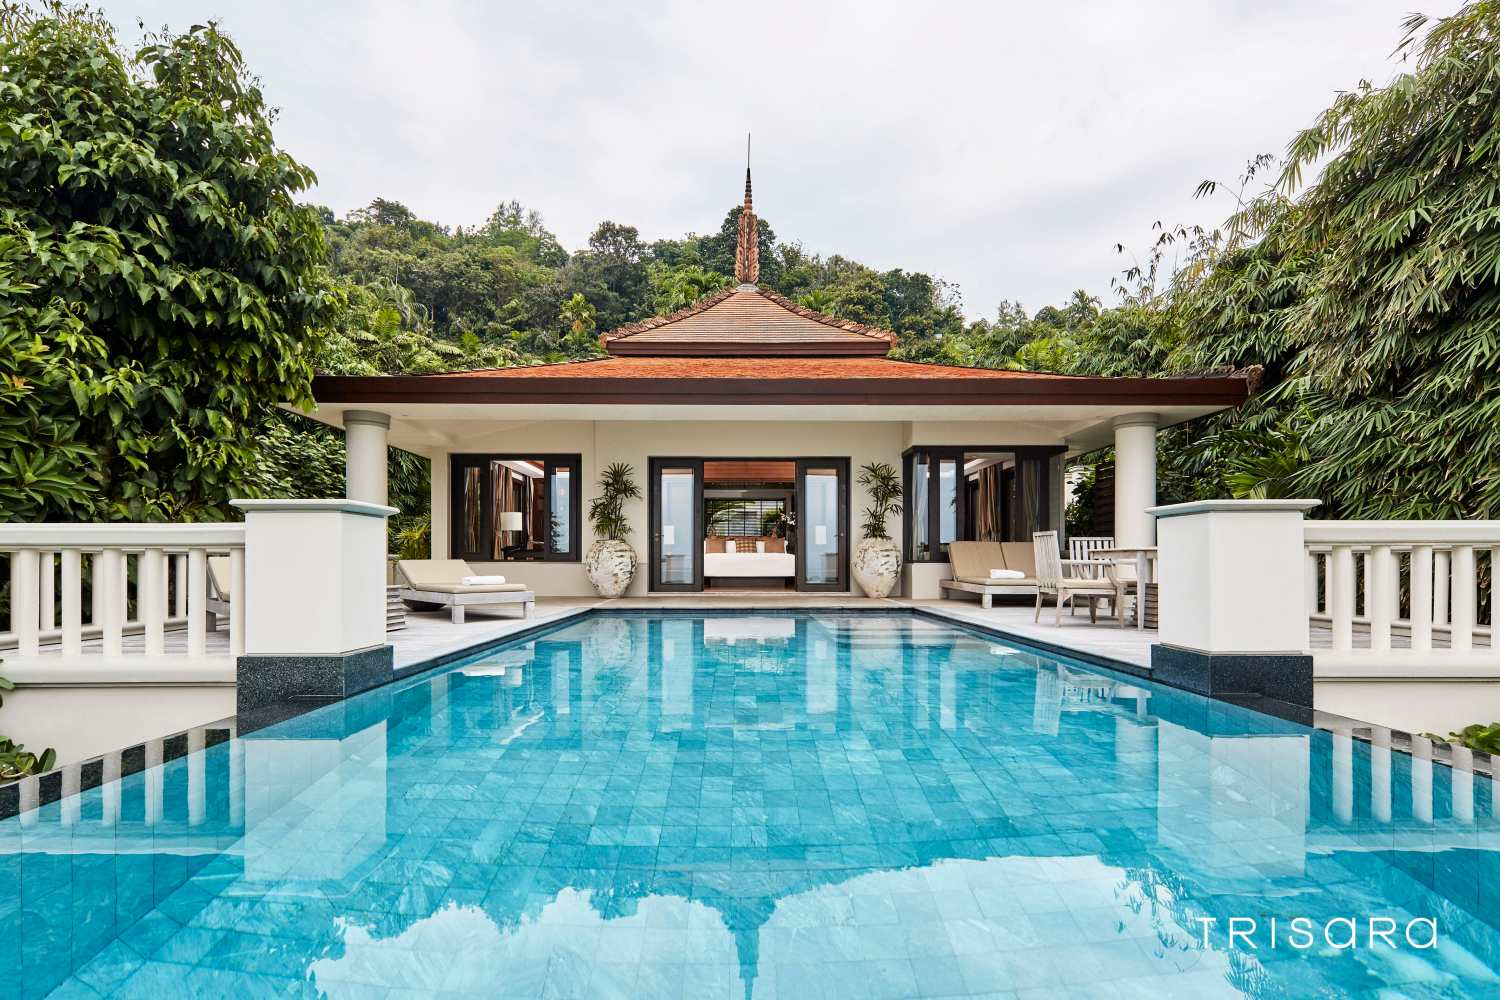 Trisara Pool Villa on Phuket, Thailand